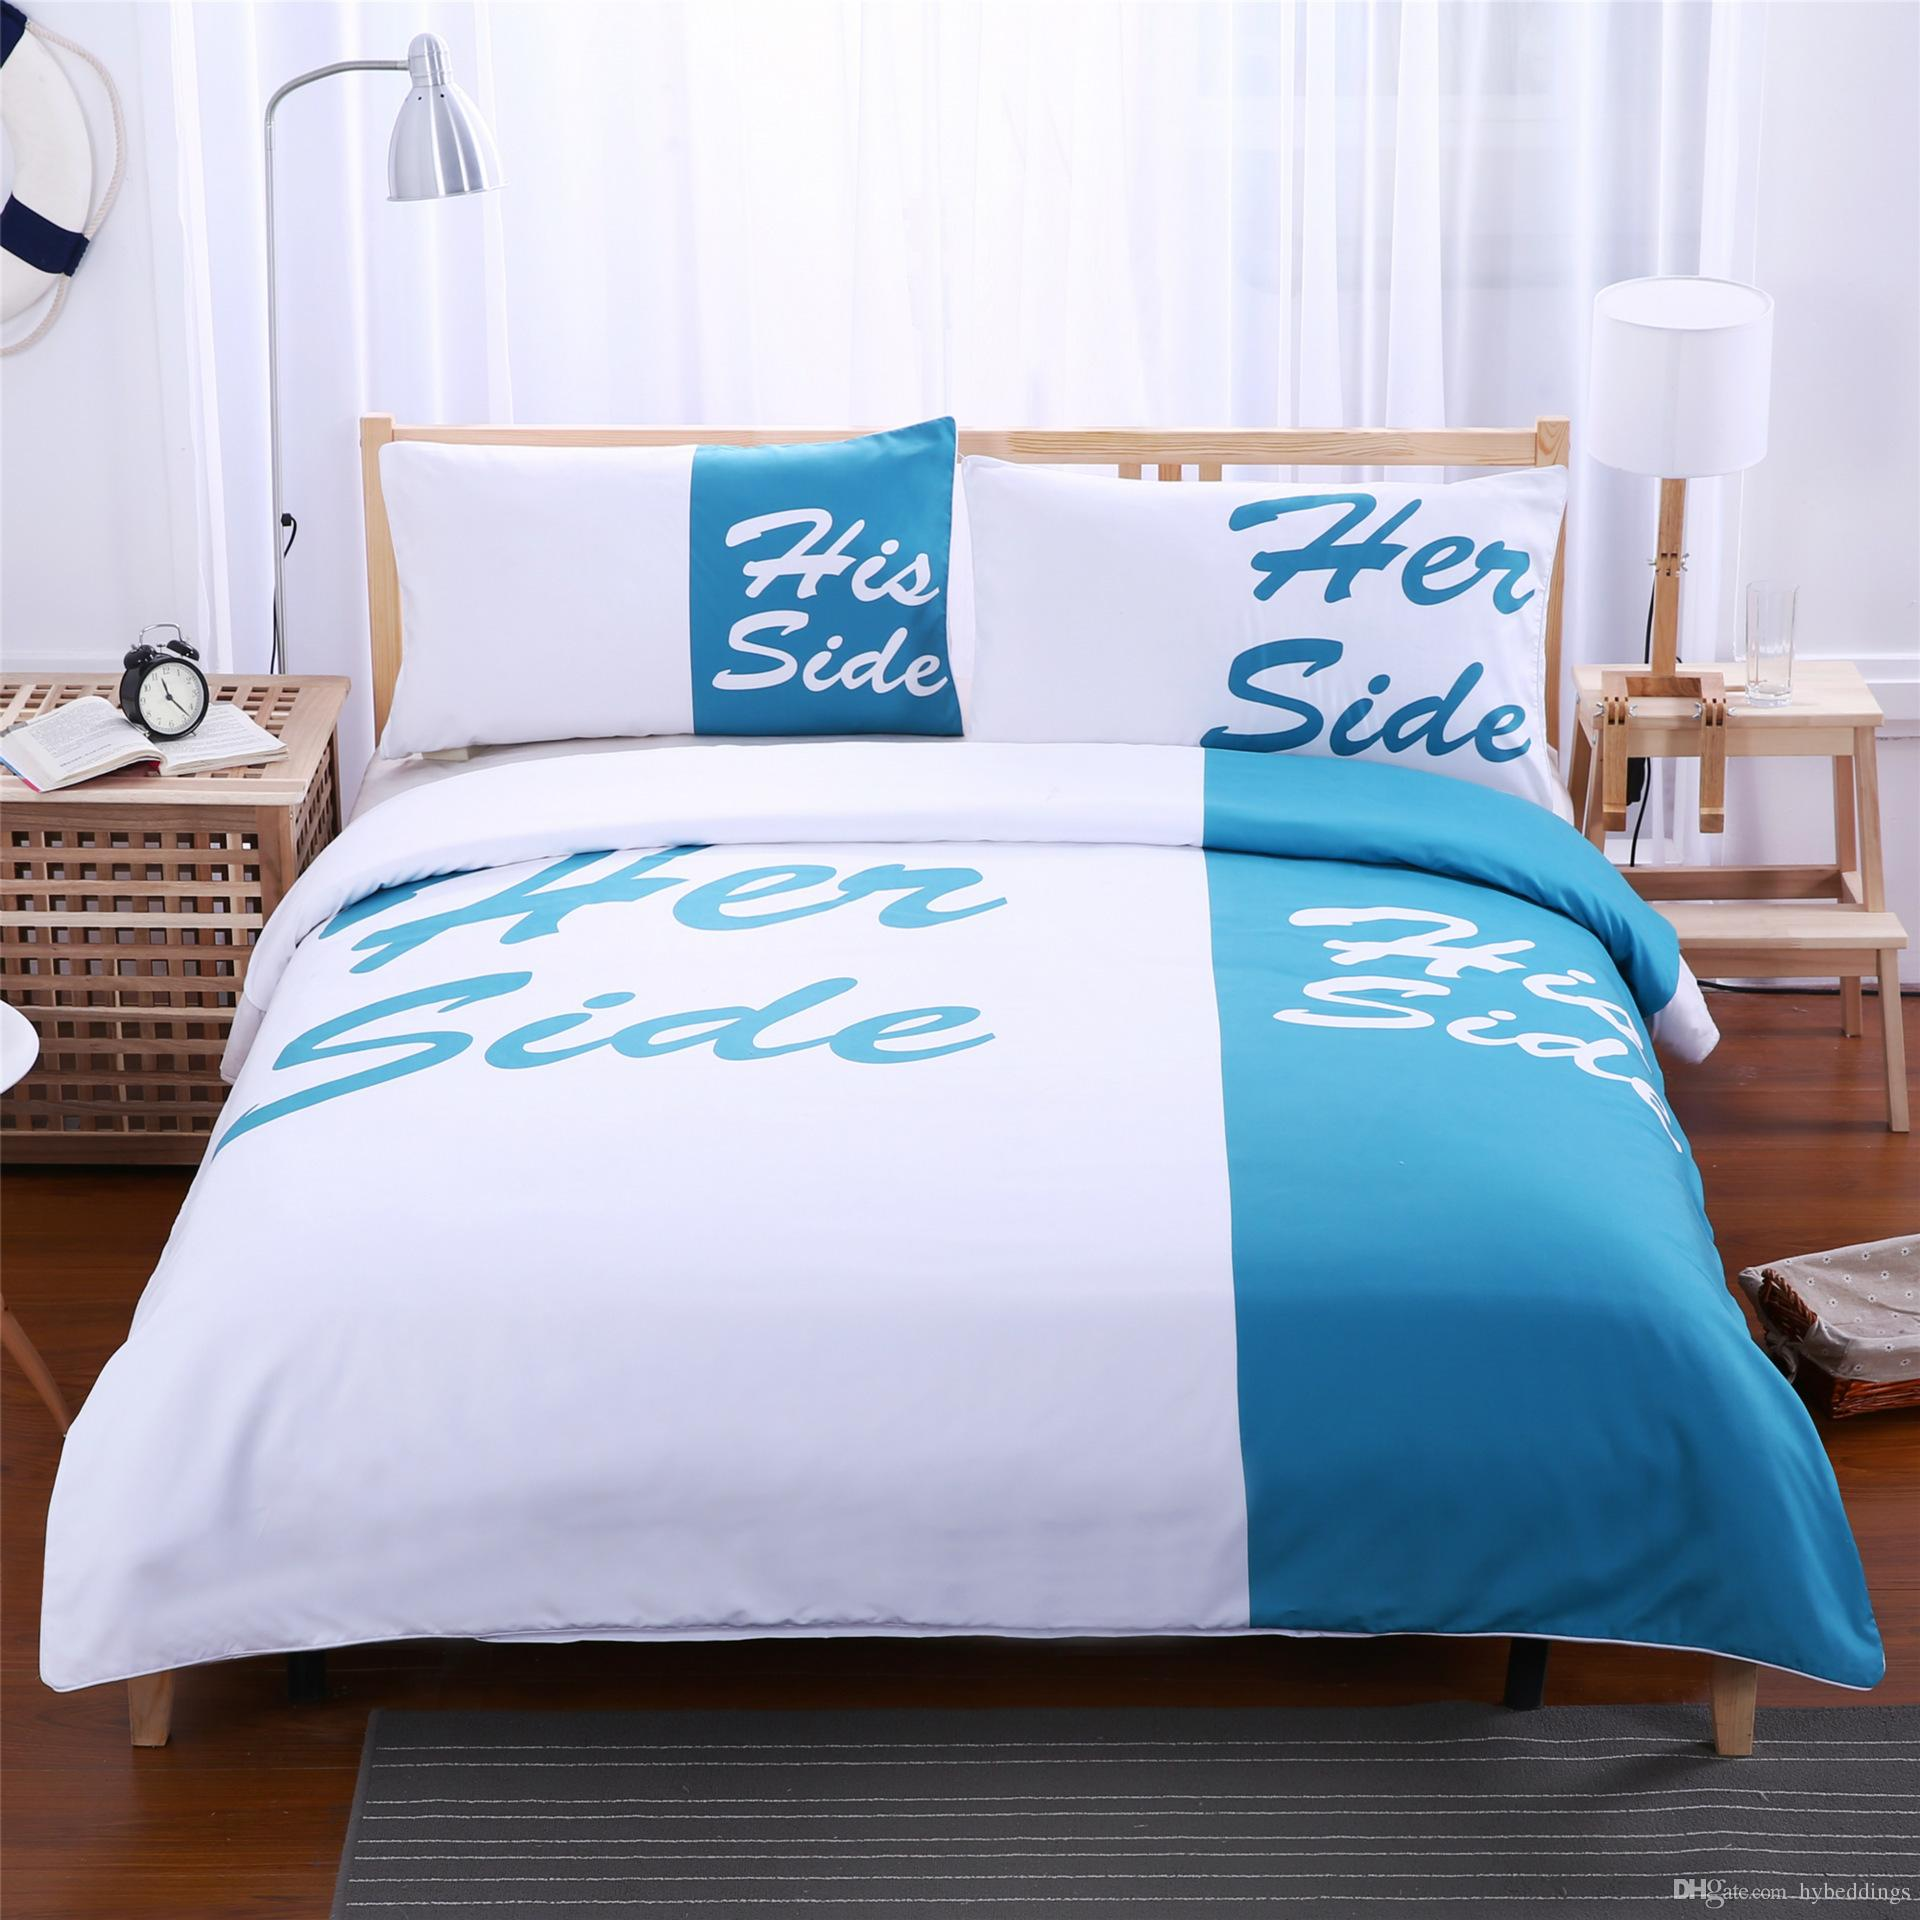 Bettwäsche Her Side His Side Light Blue And White Bedding Set His Side Her Side Couple Home Textiles Soft Duvet Cover With Pillowcases 3pcs Hot Sale